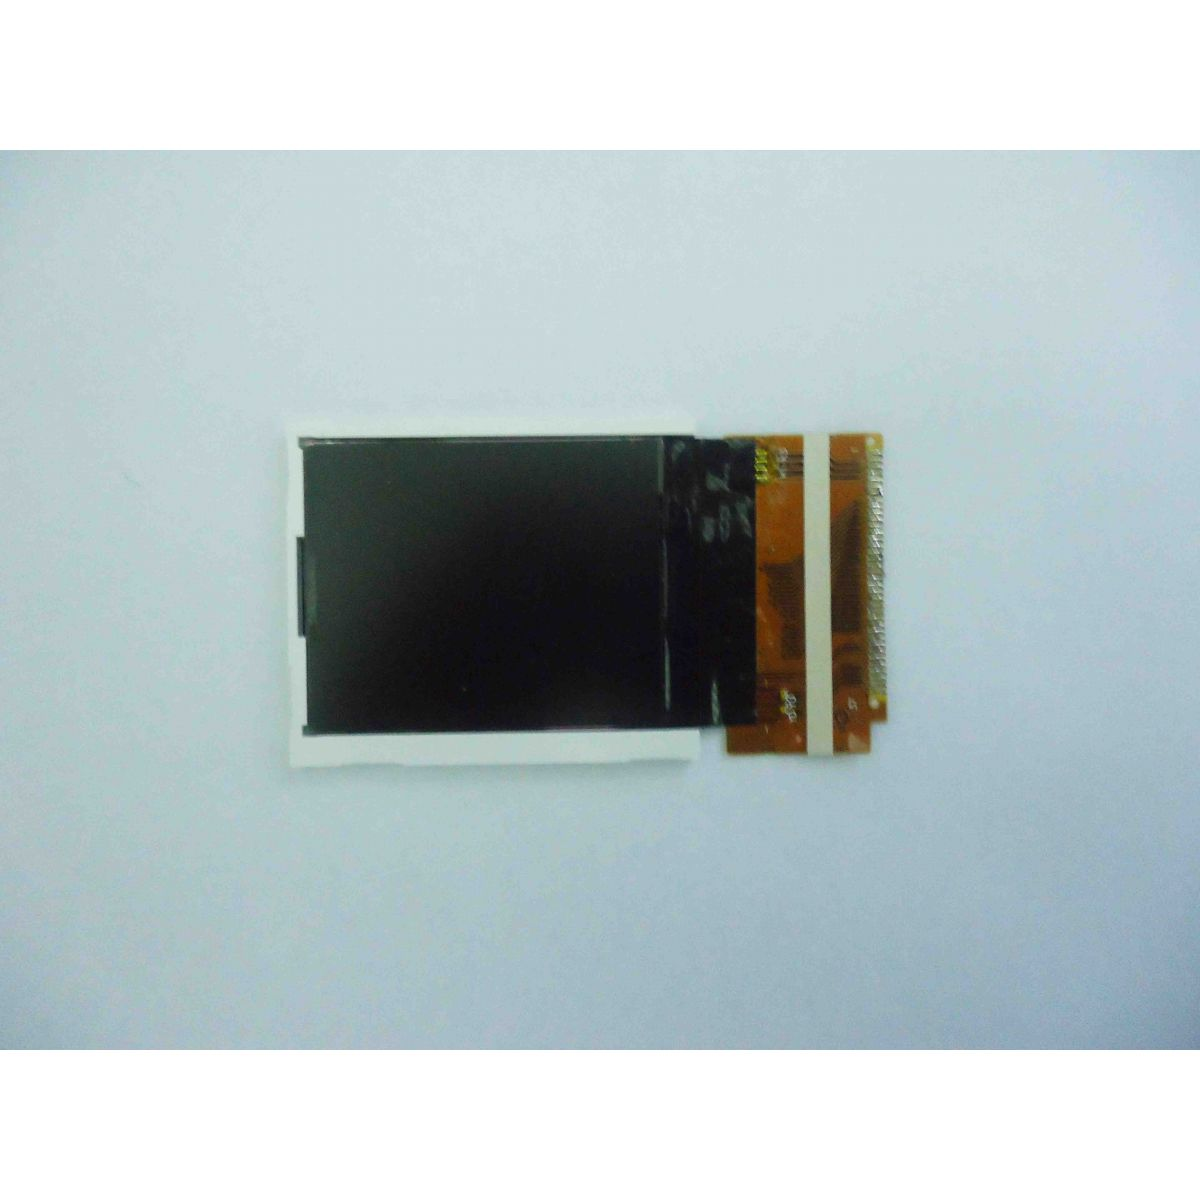 Tela Display LCD Celular 320012b00-02-v0